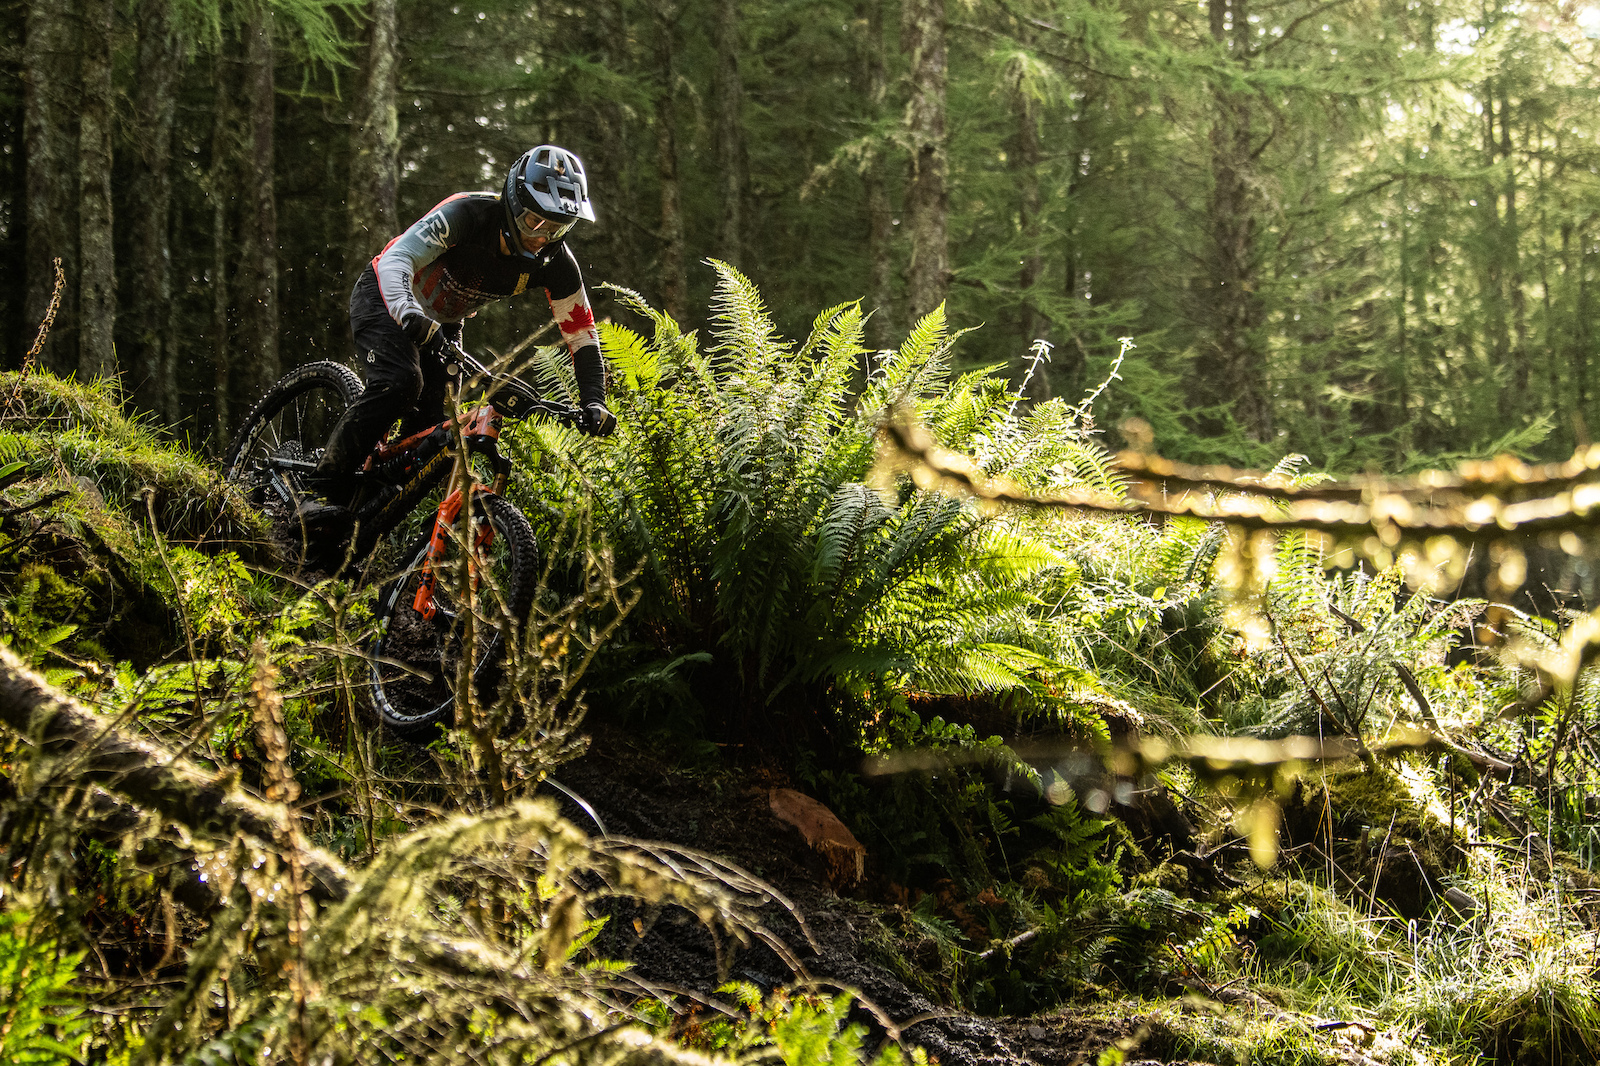 Remi Gauvin through the rain forest on Stage 2